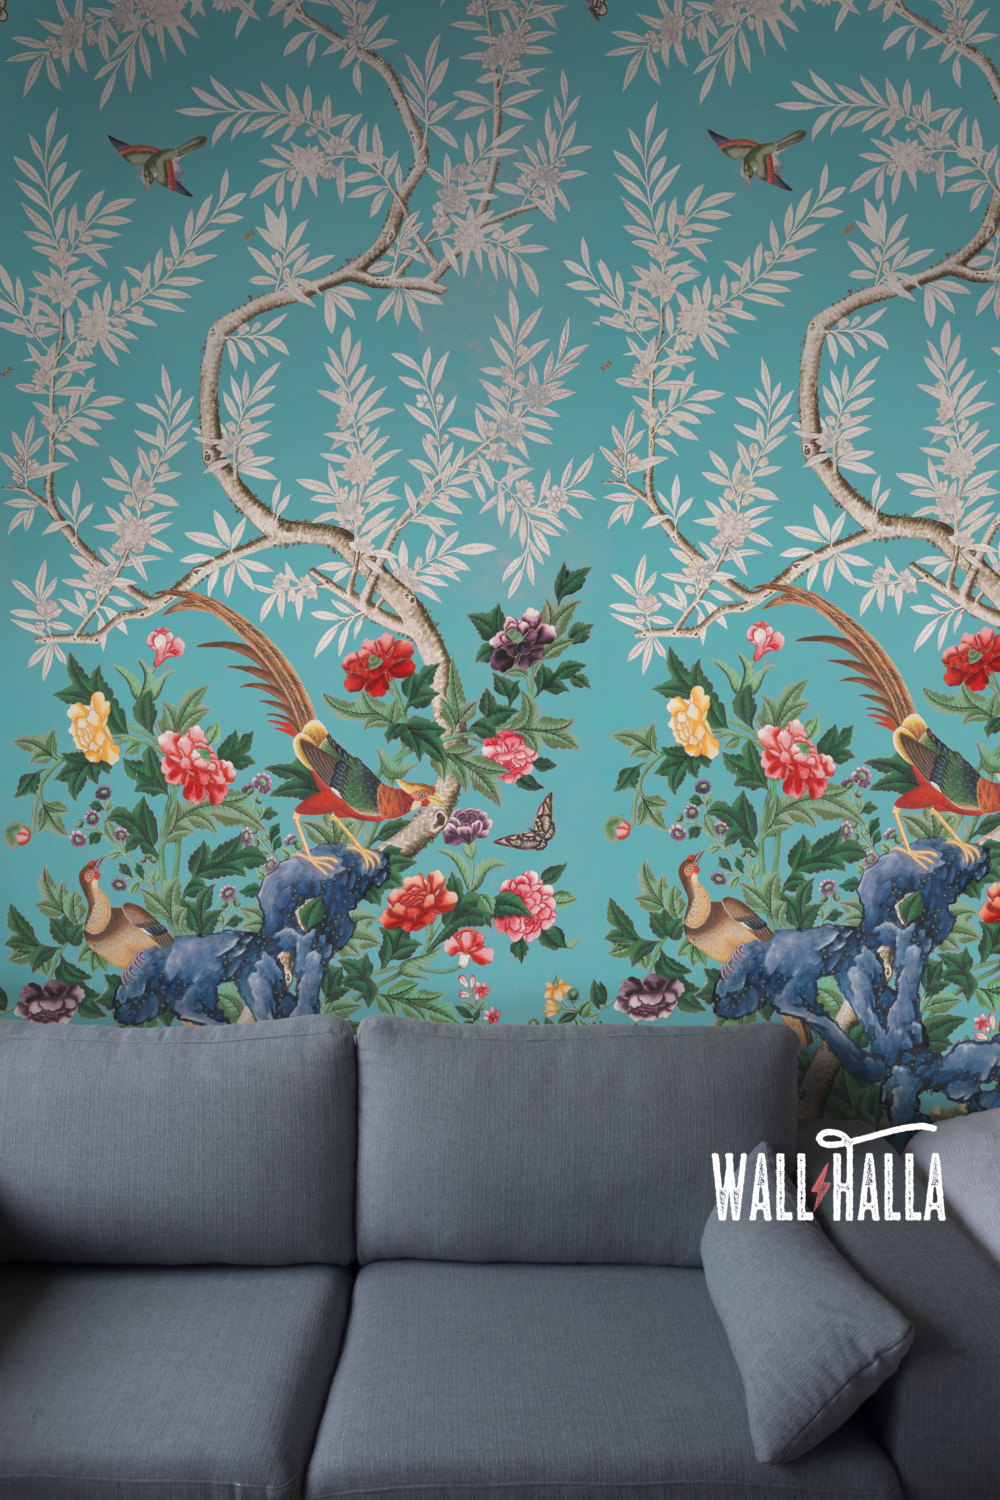 WallHalla Chinoiserie Teal Florals Wallpaper